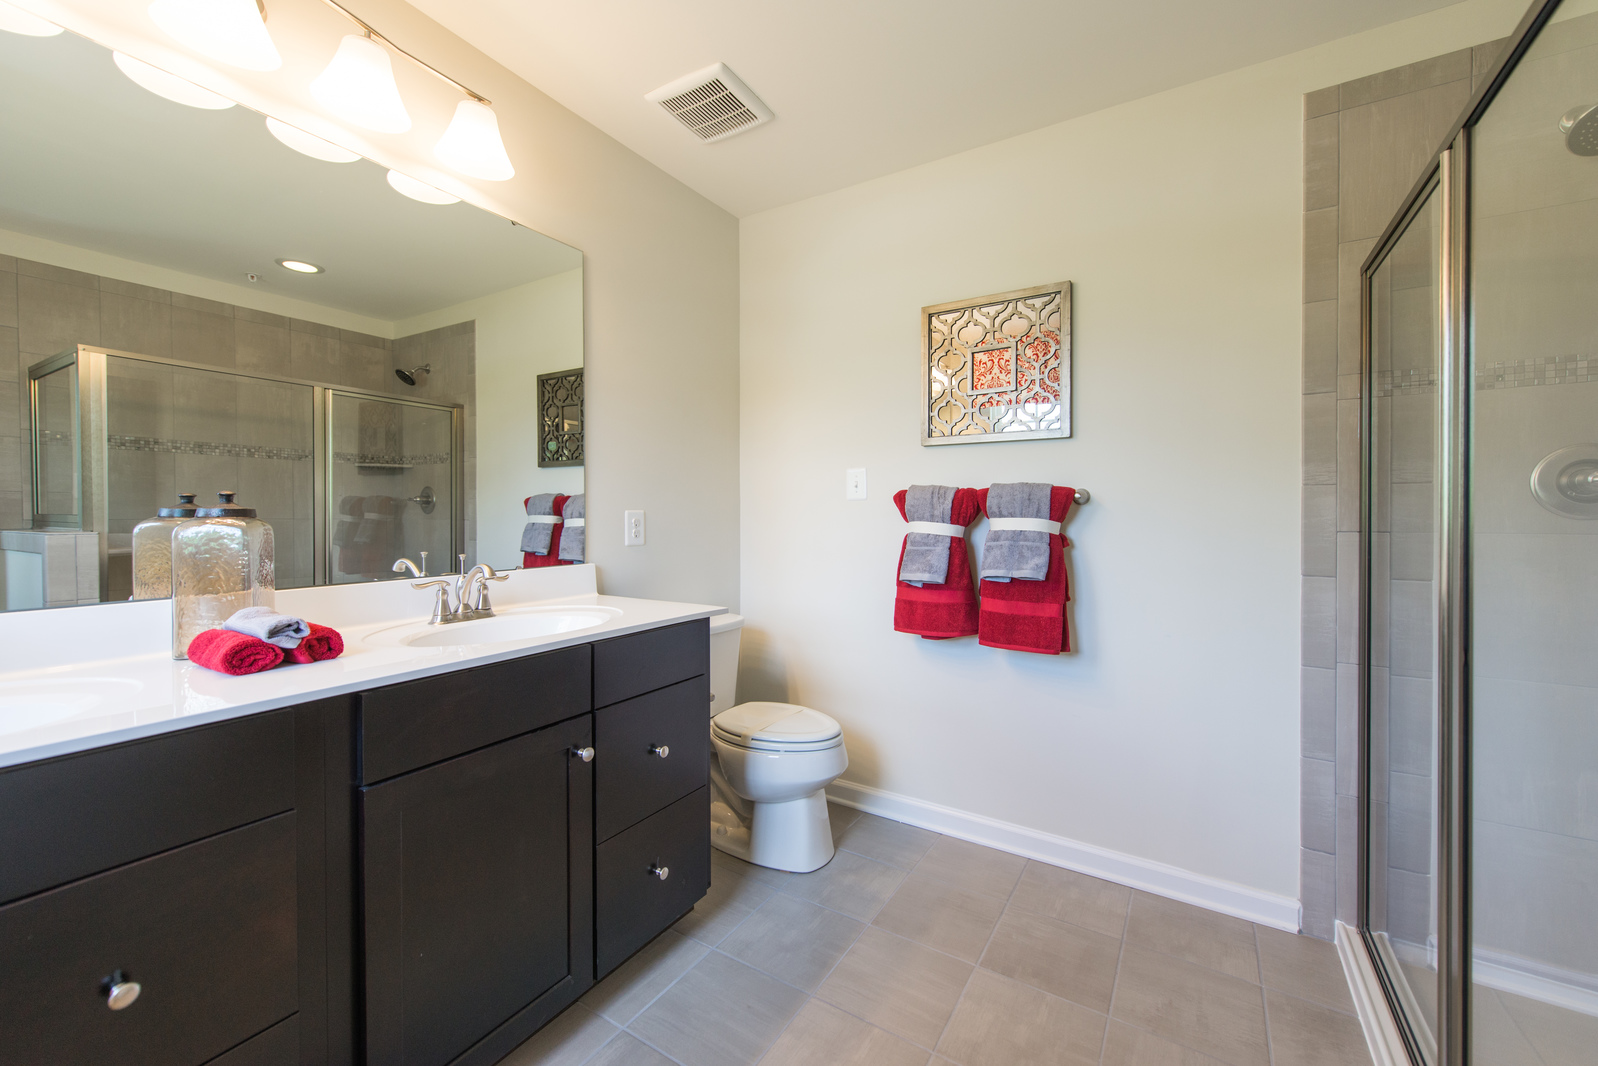 New Construction Townhomes For Sale -Wexford-Ryan Homes